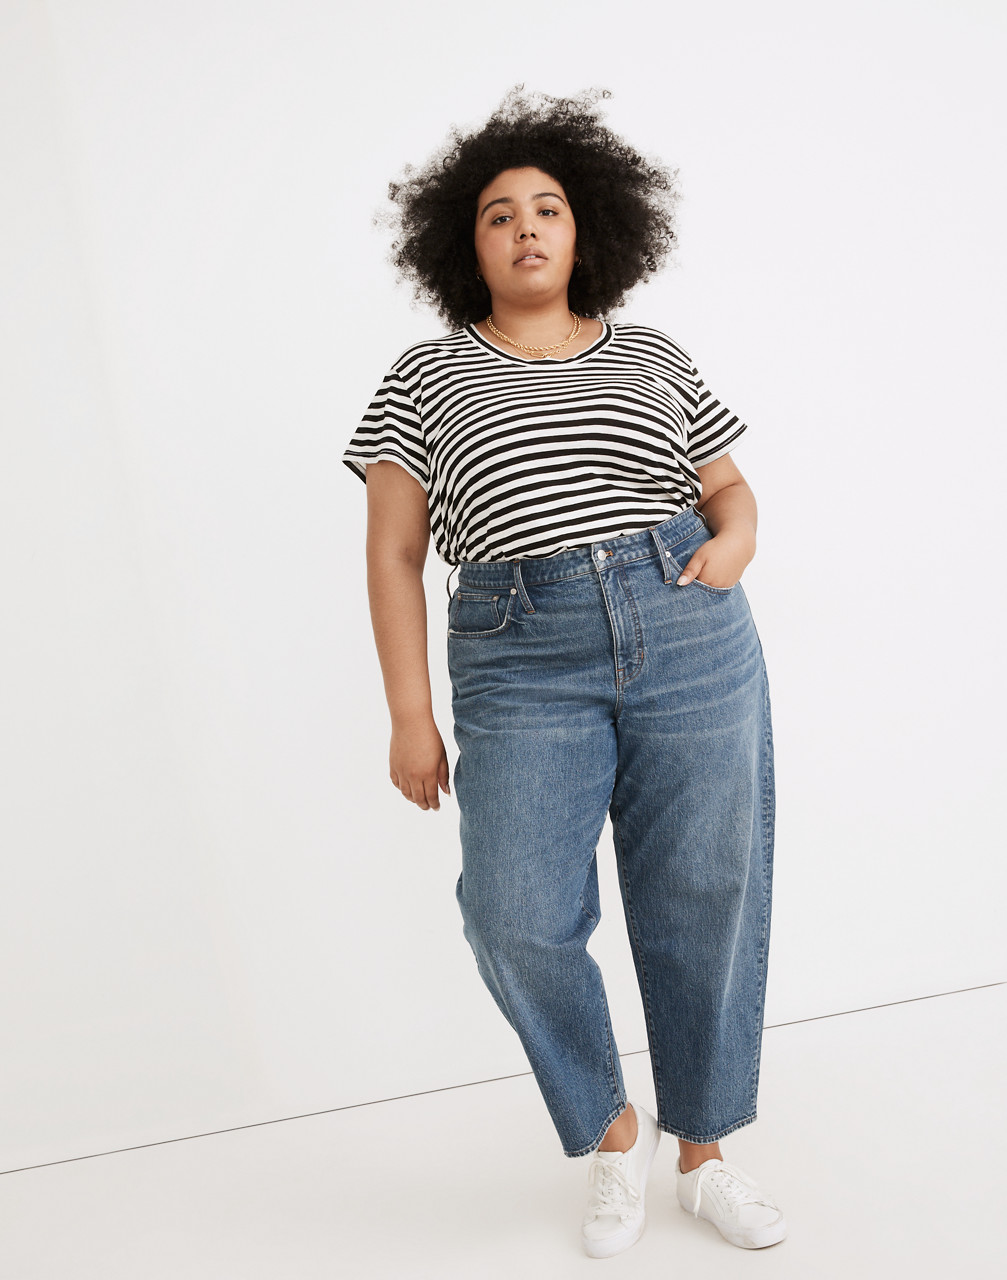 80s Fashion— What Women Wore in the 1980s Plus Balloon Jeans in Corson Wash $128.00 AT vintagedancer.com